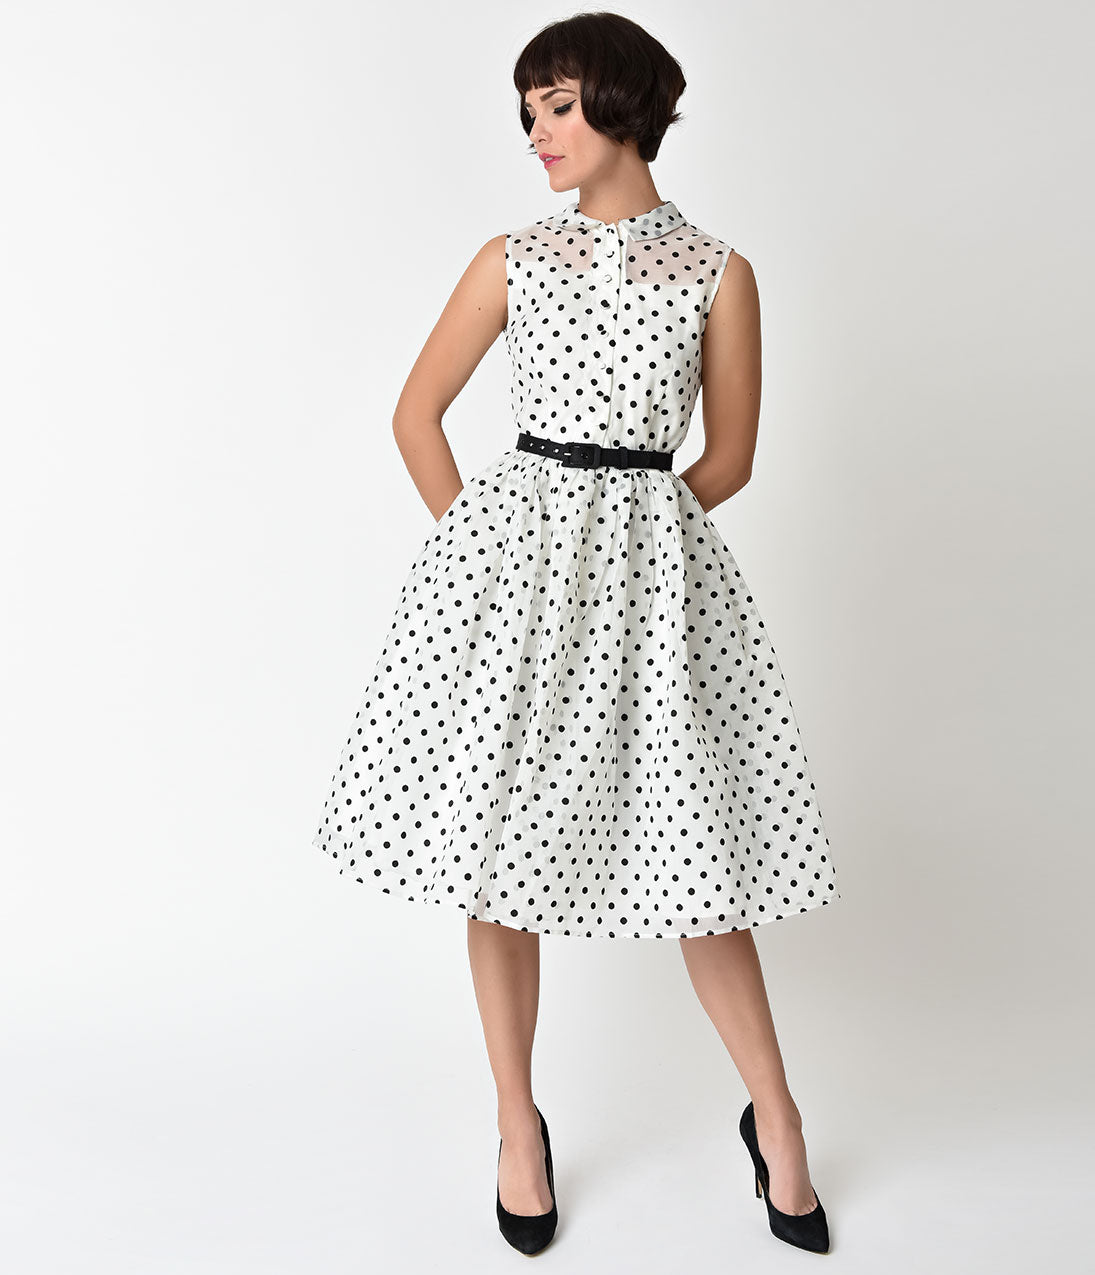 1950s Swing Dresses | 50s Swing Dress Unique Vintage 1950S Style White  Black Dotted Organza Georgia Swing Dress $110.00 AT vintagedancer.com